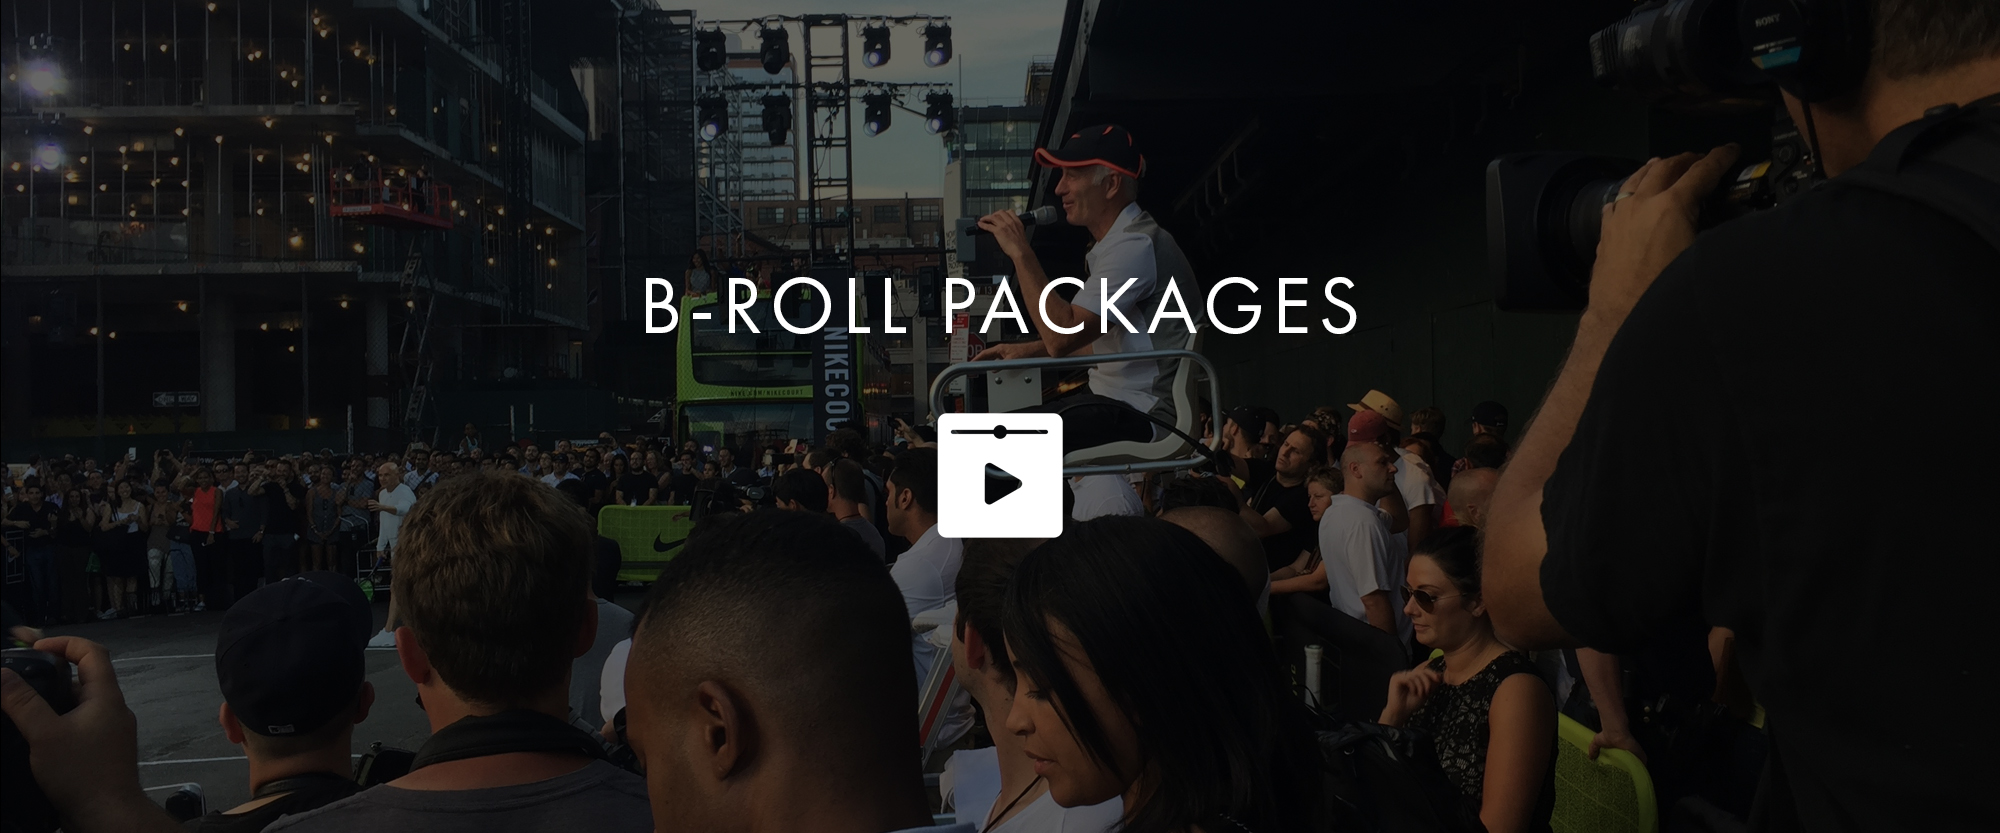 homepagegallery_services_brollpackages.jpg